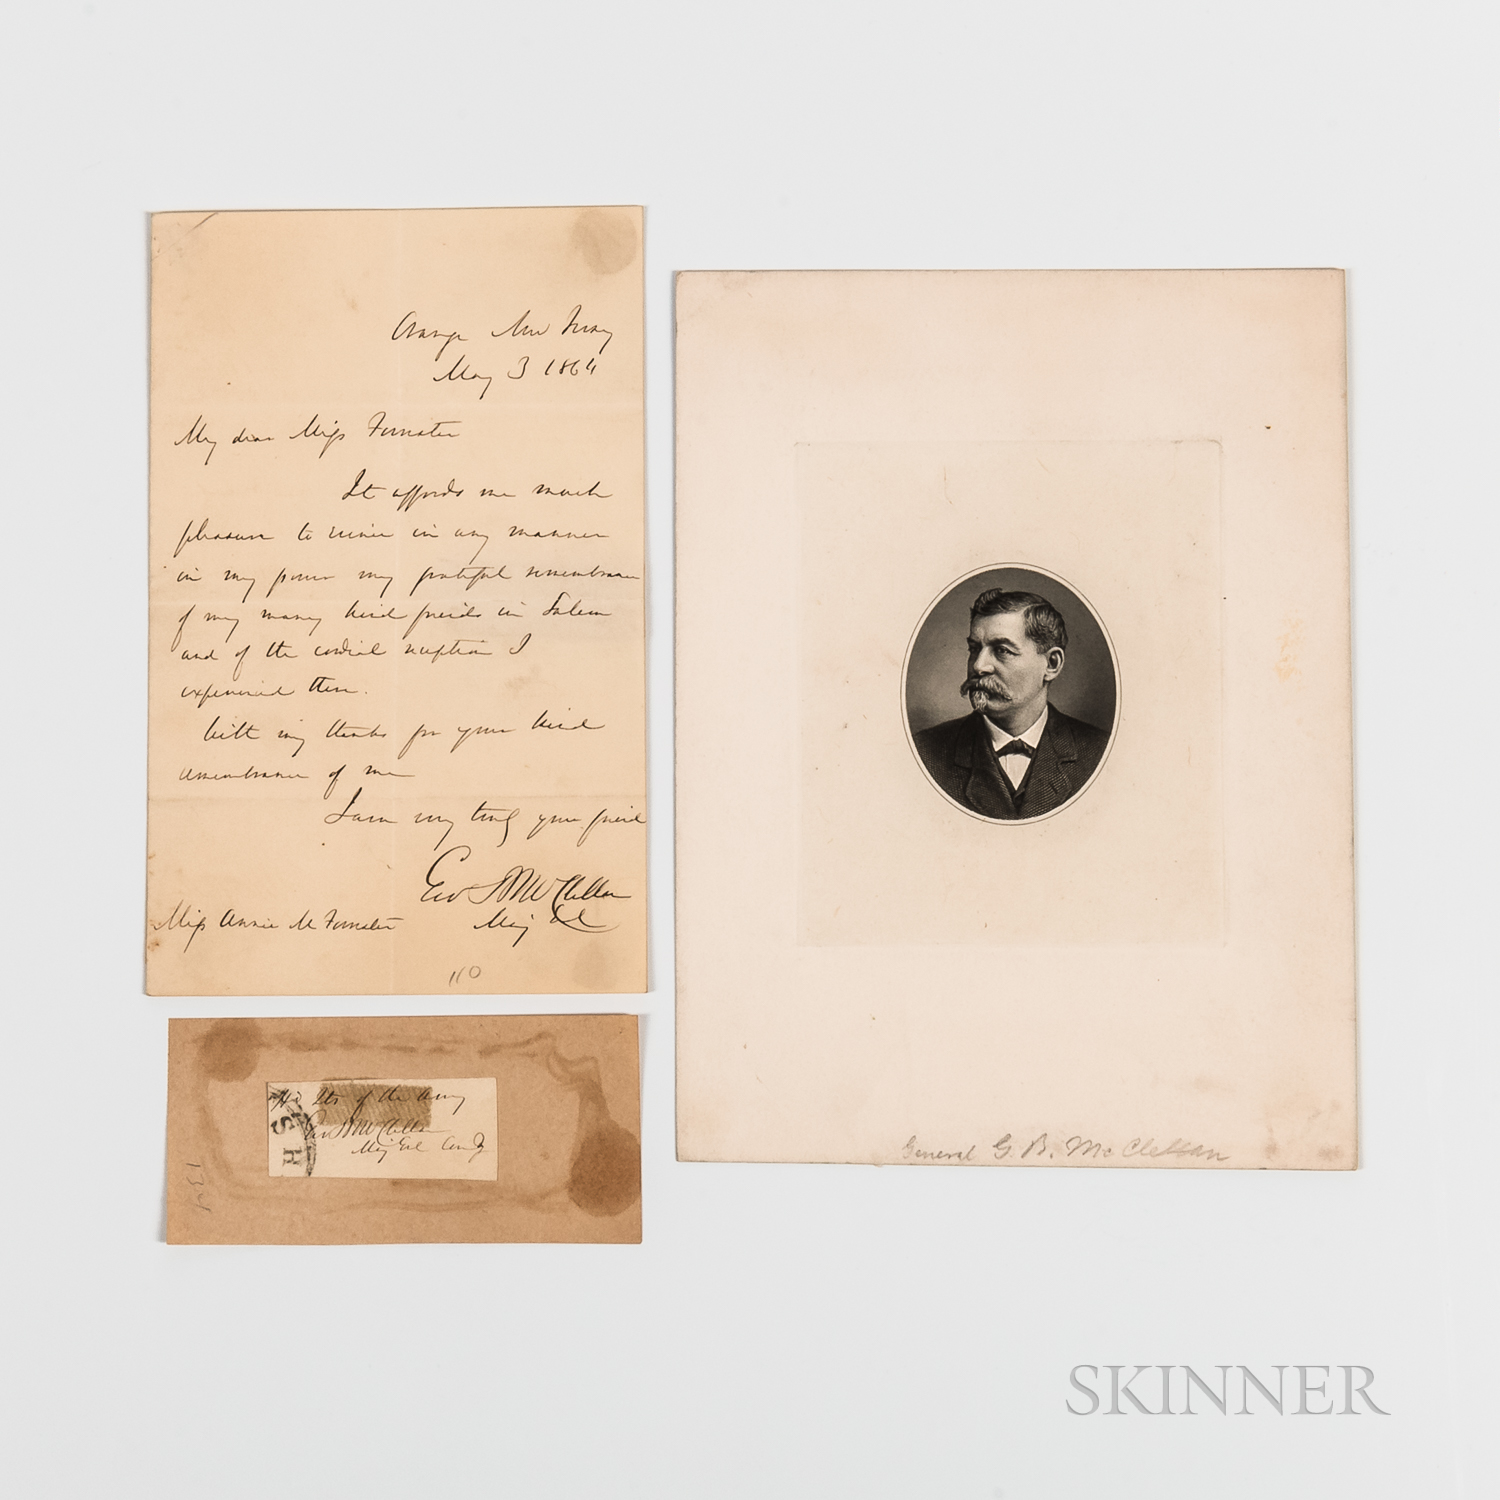 McClellan, George B. (1826-1885) Autograph Letter Signed, Clipped Signature and Engraved Portrait.